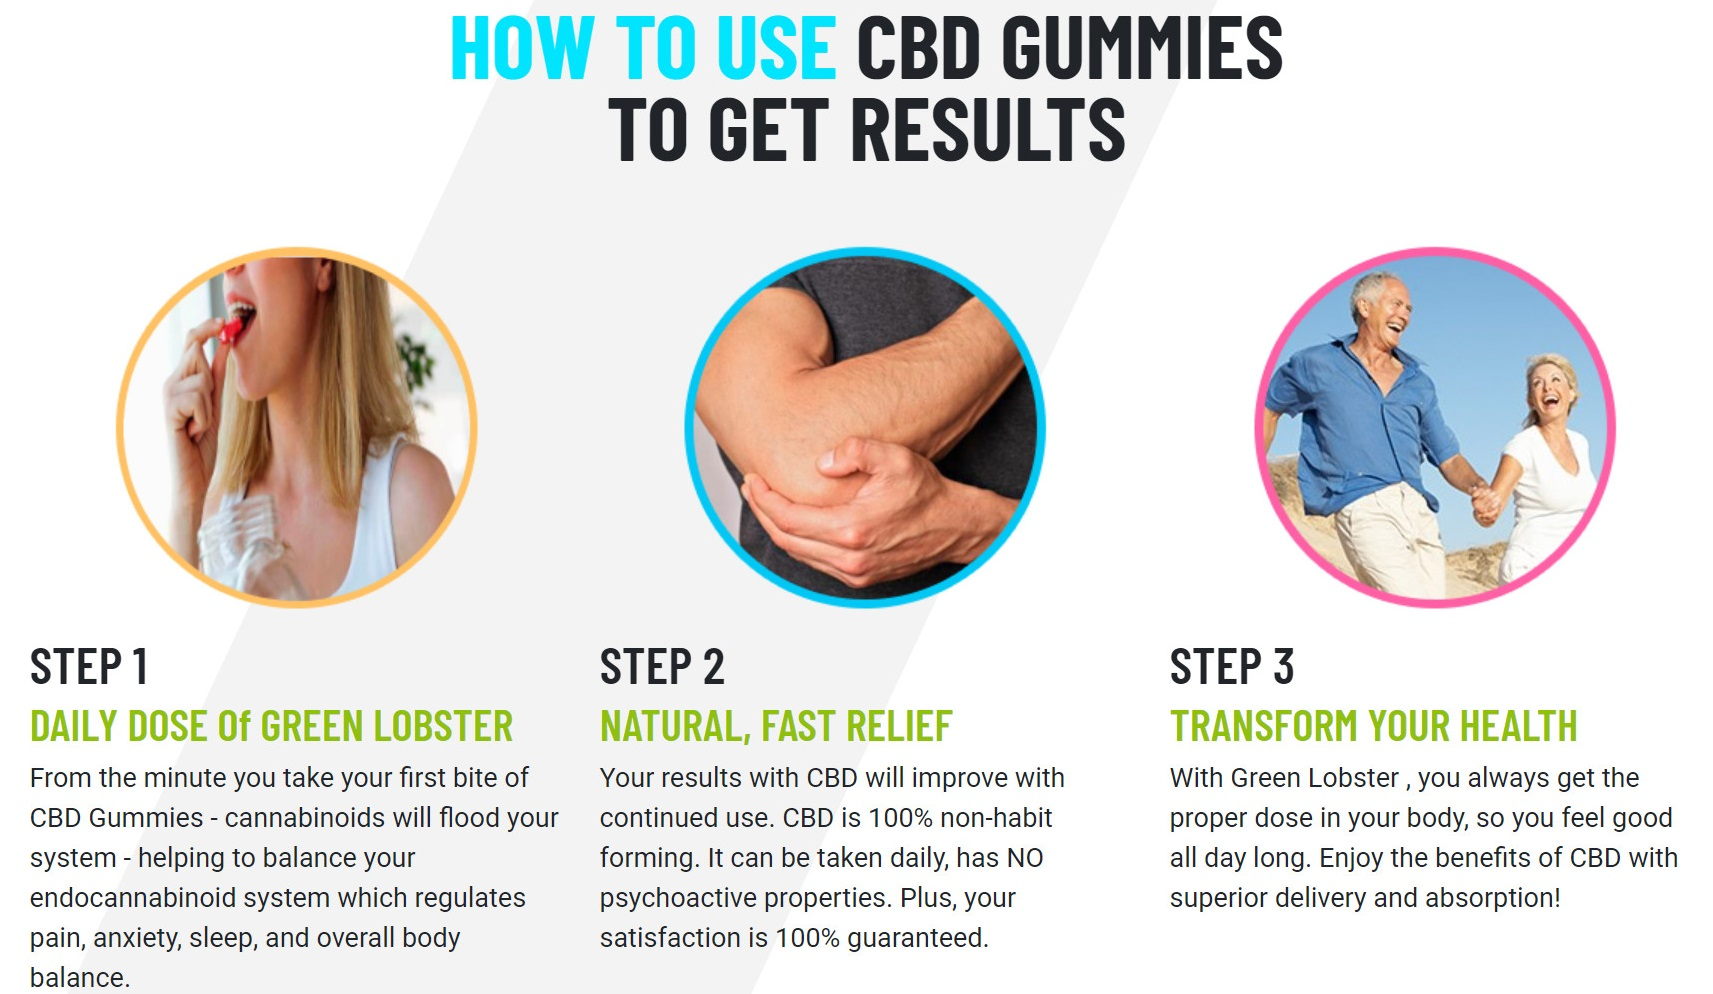 Green Lobster CBD Neon Cubes Gummies How To Use